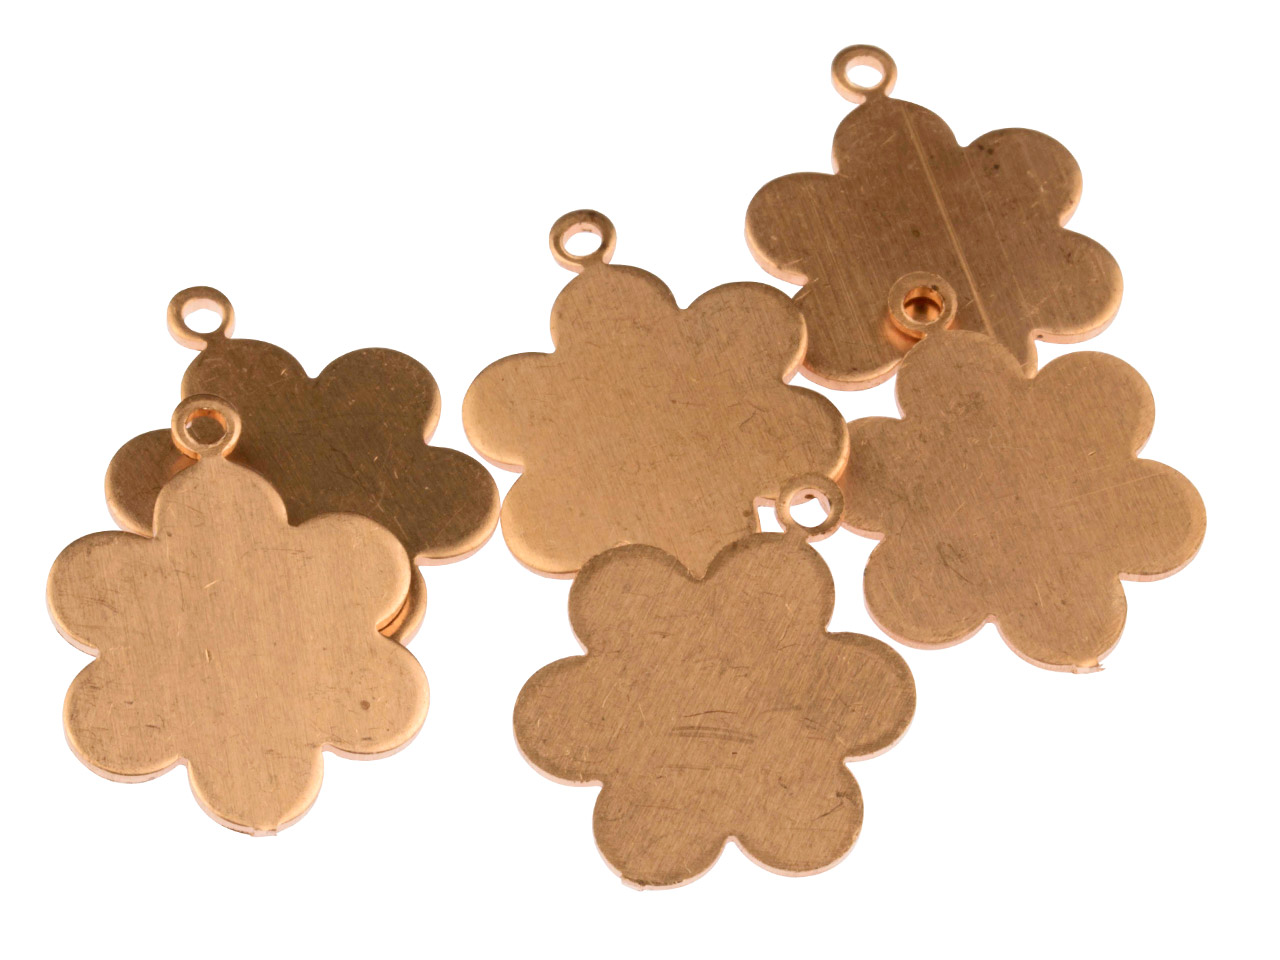 Copper Blanks Medium Daisy Pendant Pack of 6 25mm X 19mm